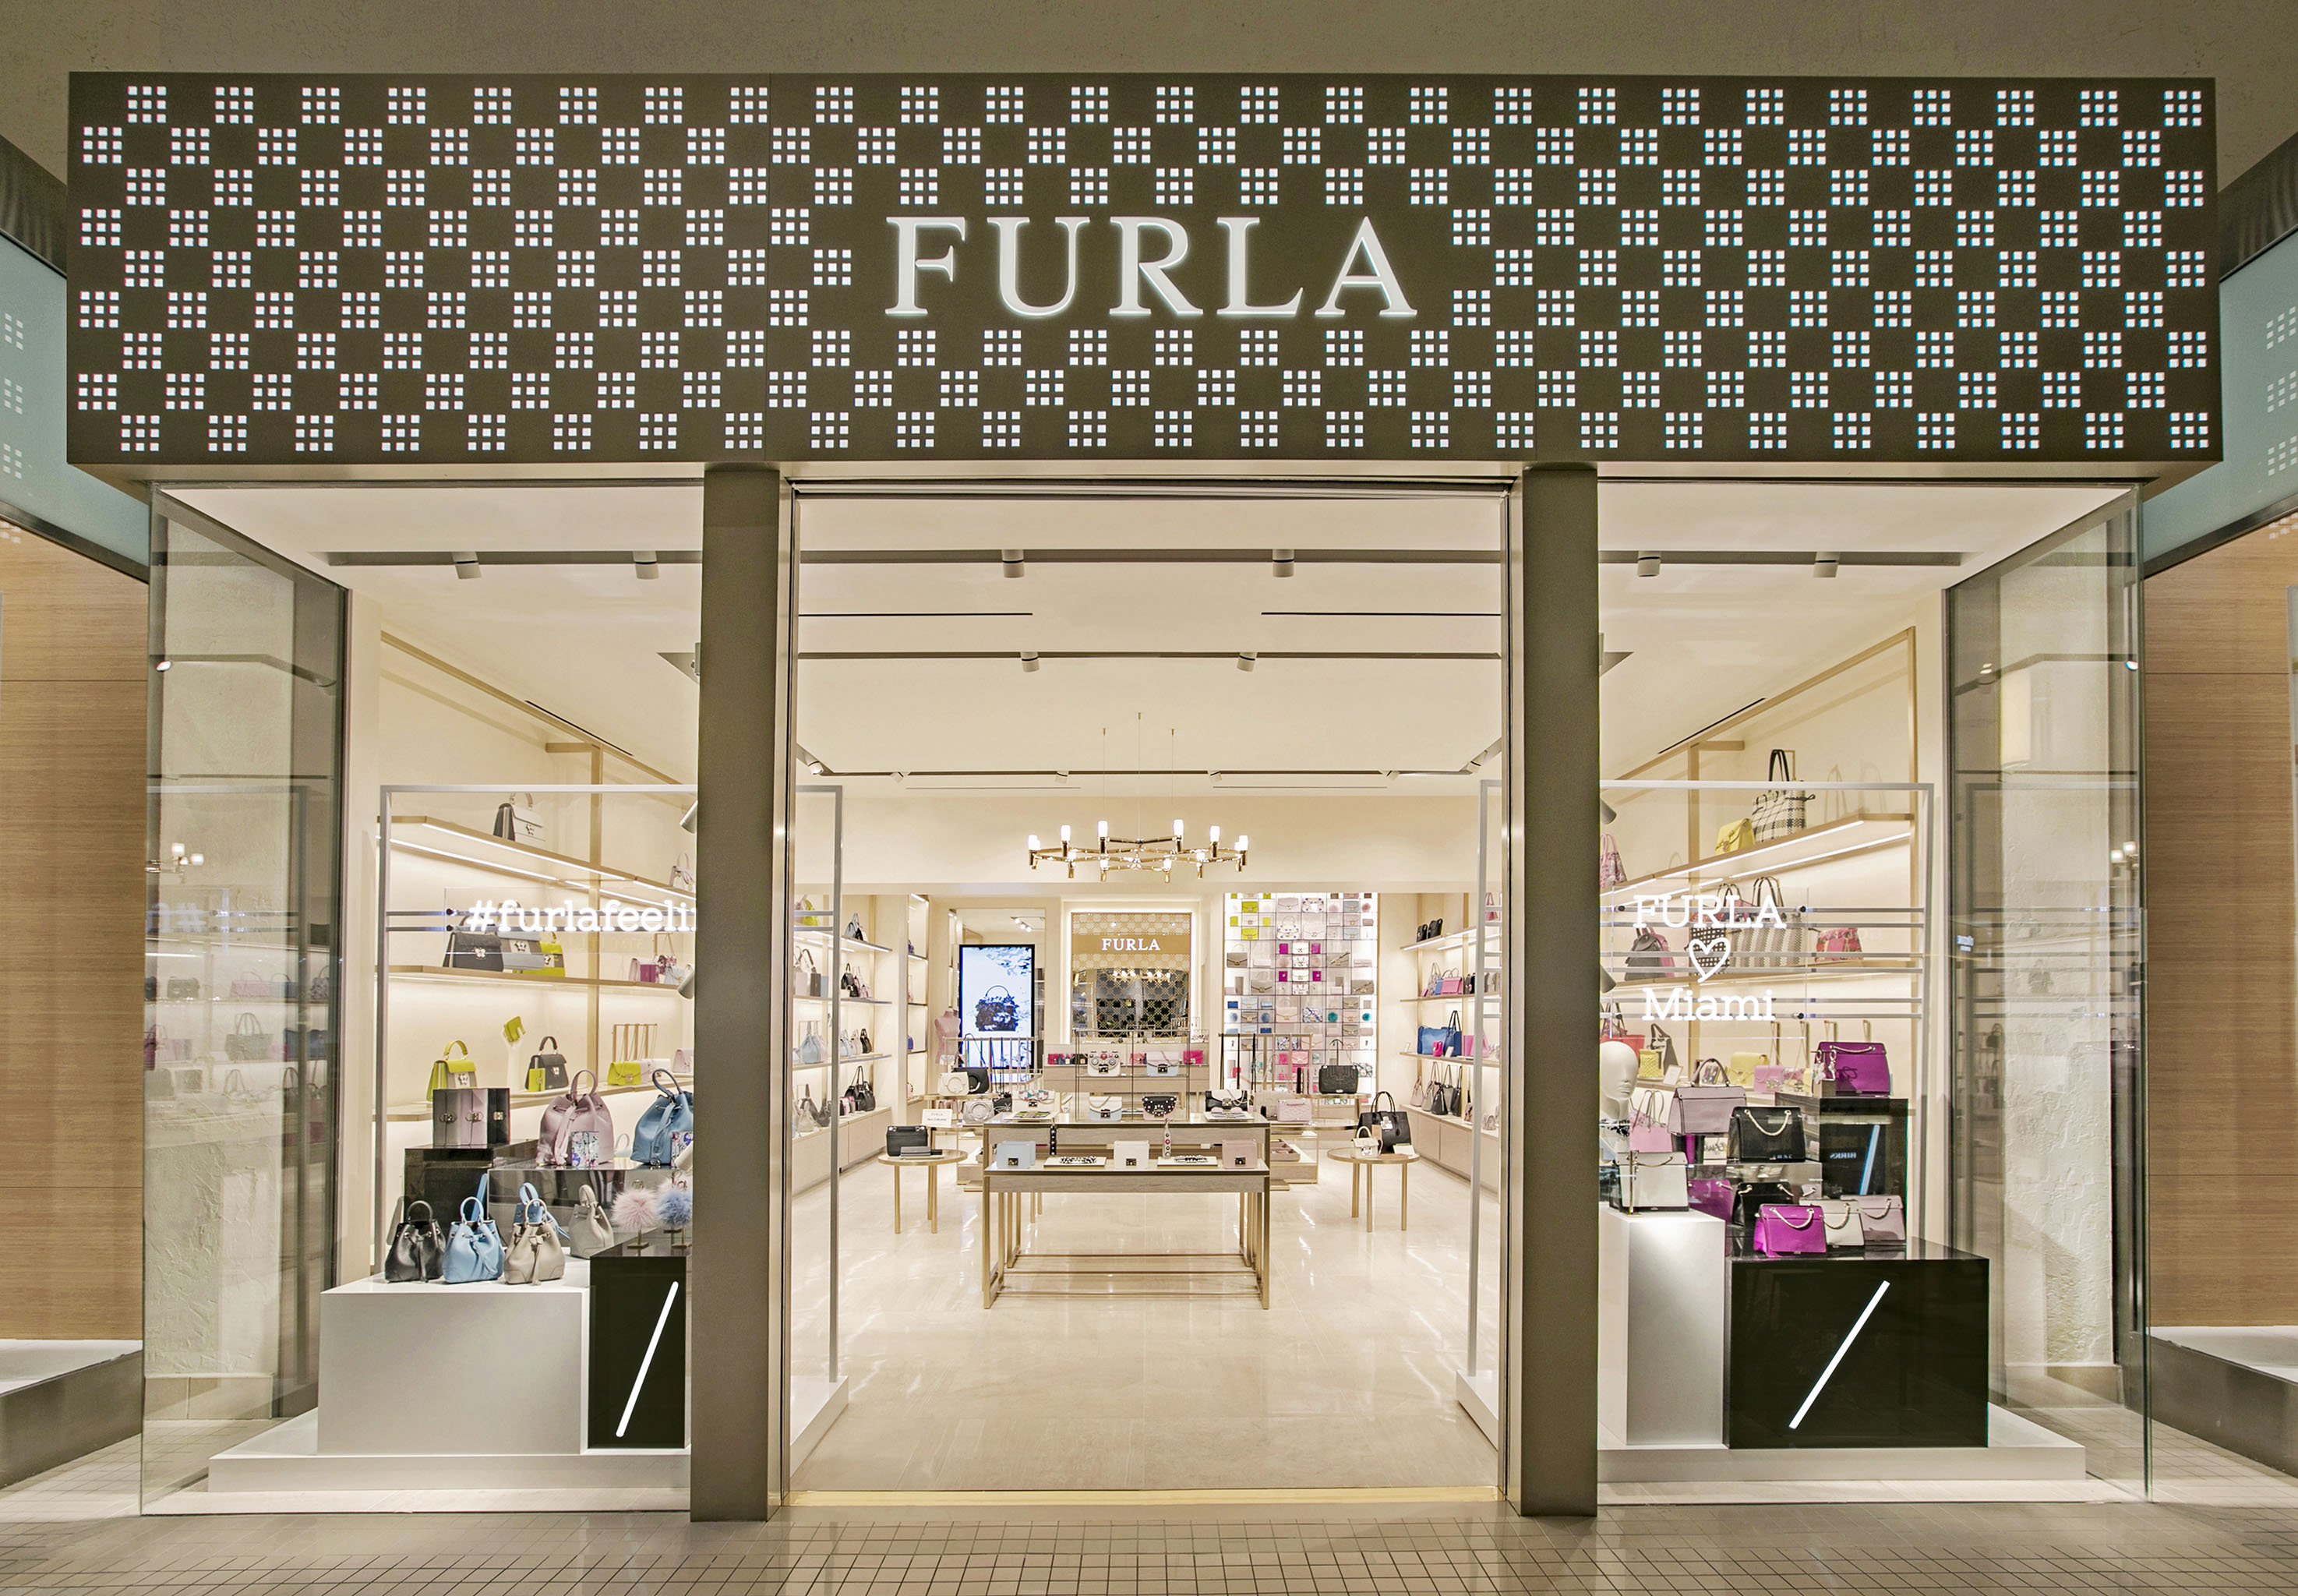 The Furla store in Florida at Avenura Mall.